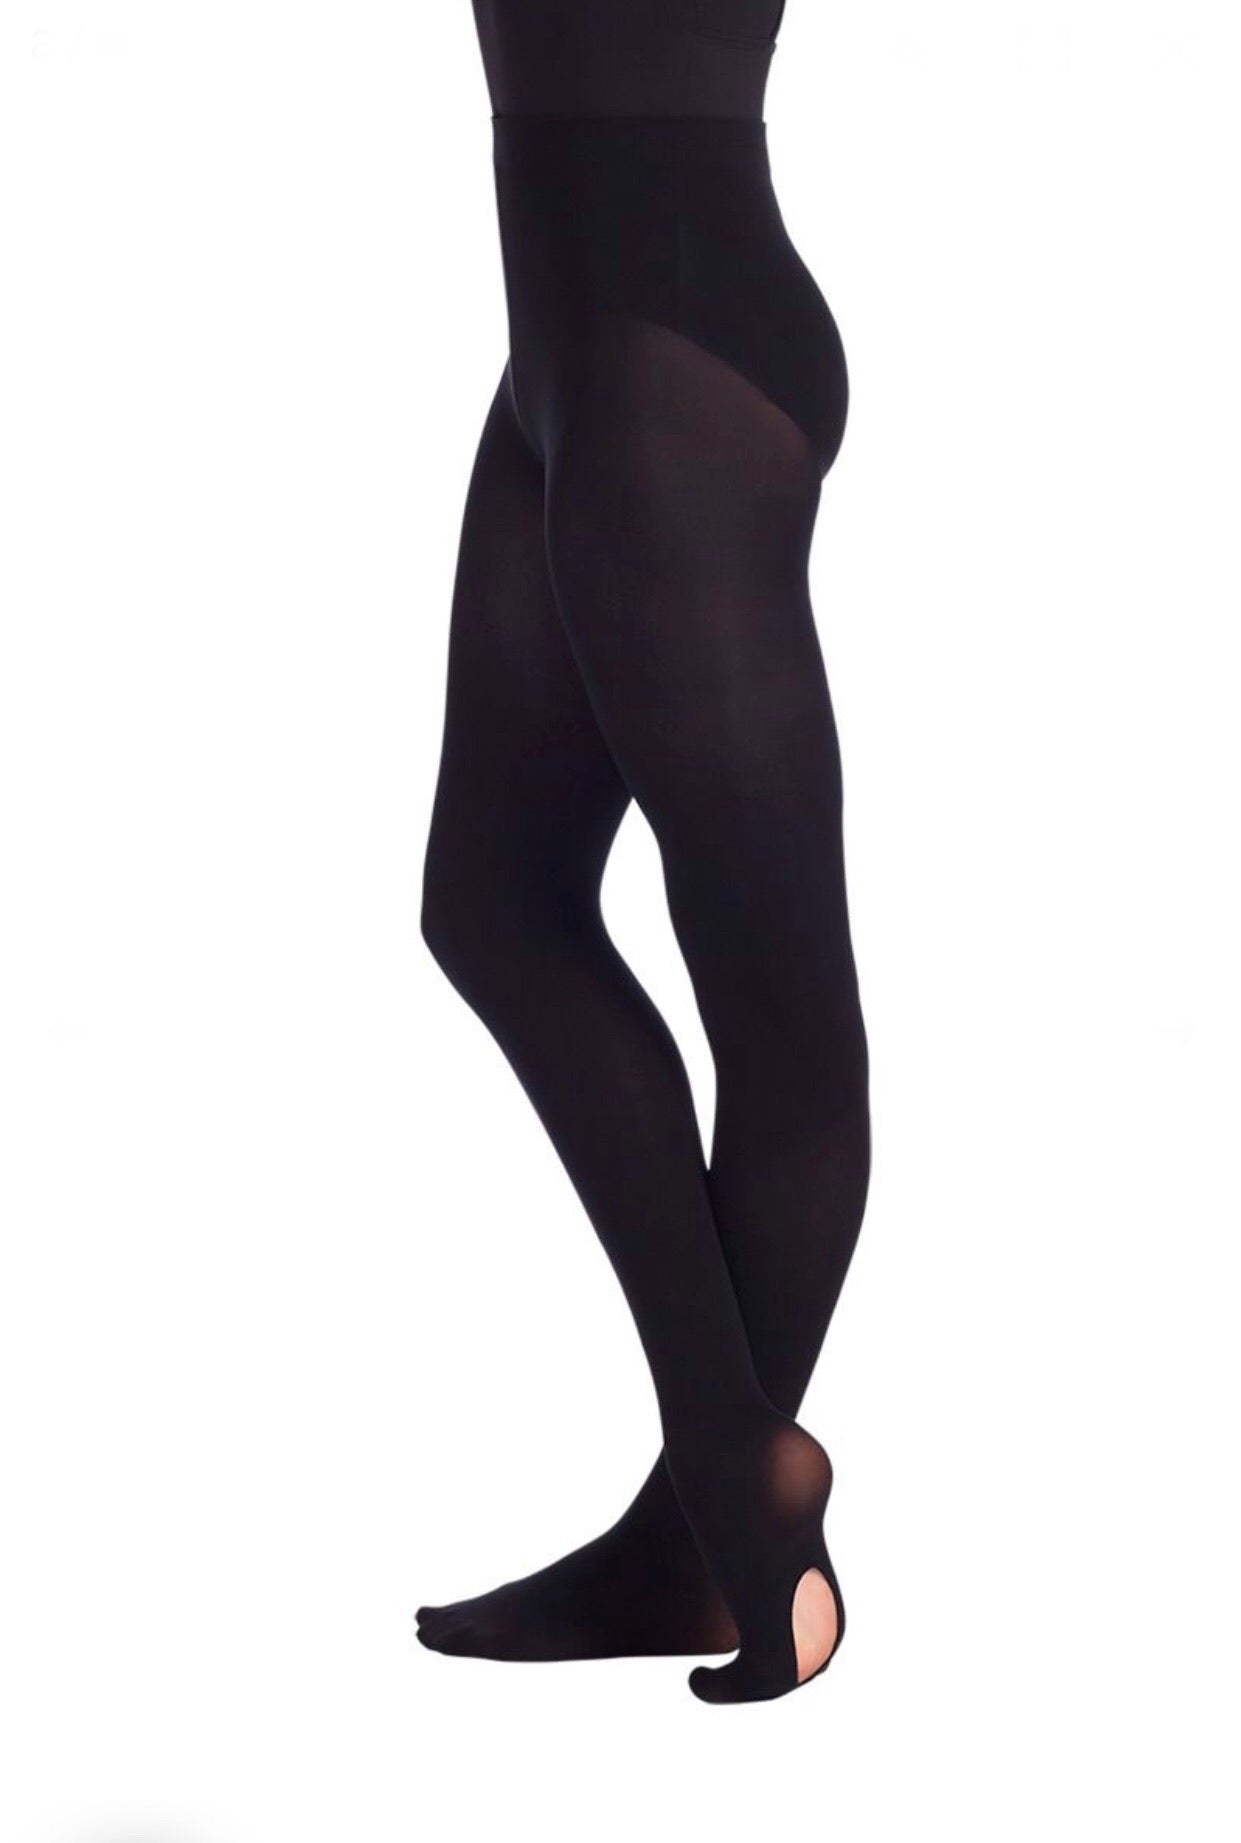 So Danca Convertible Tights - Adult